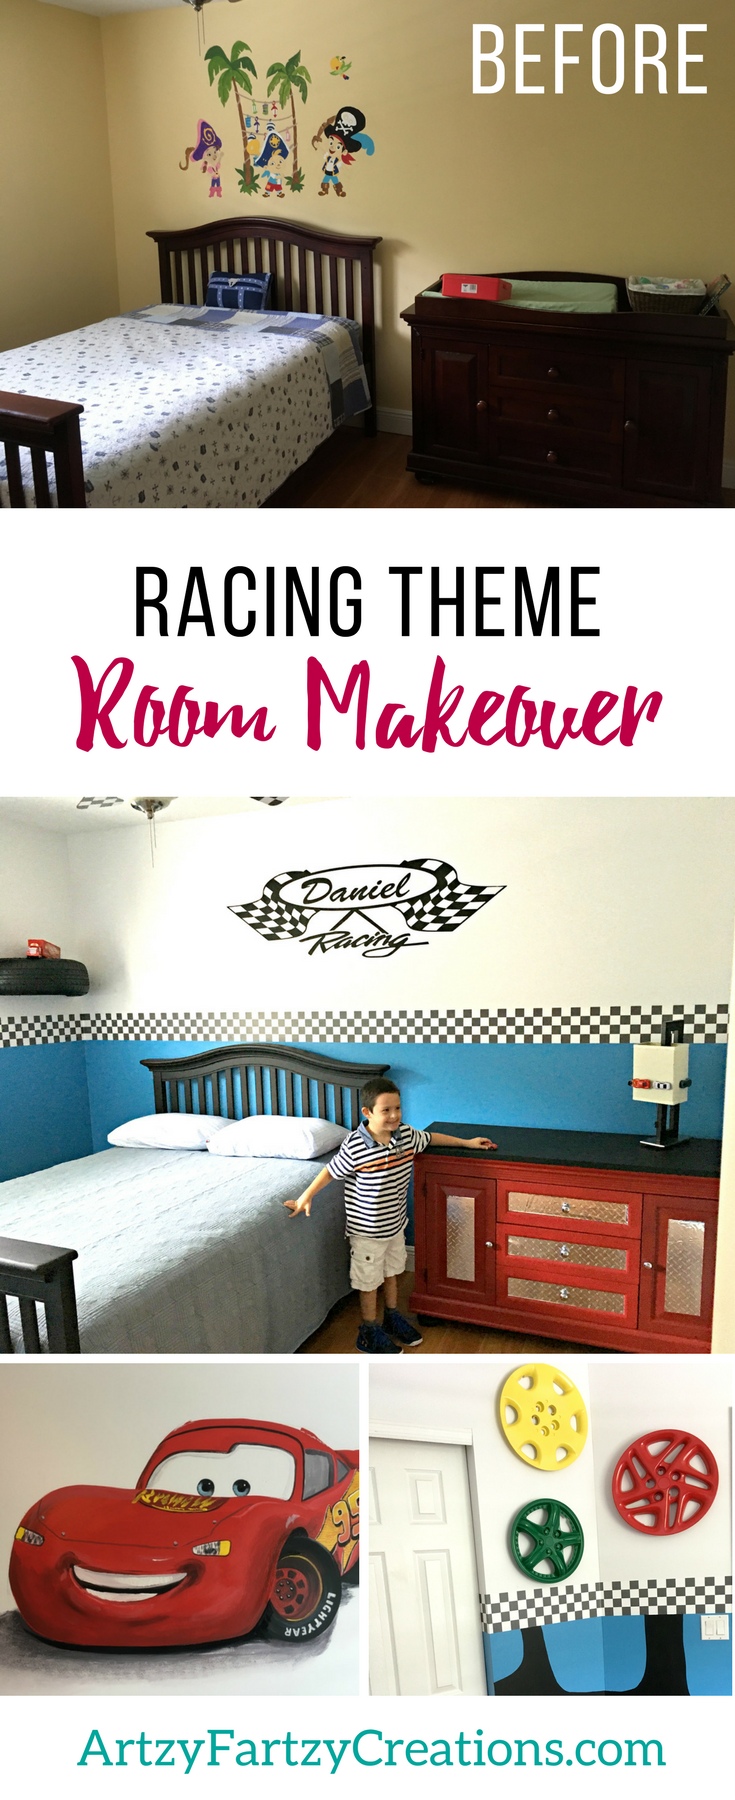 Race Car Boys Bedroom Makeover by Cheryl Phan | Lightening McQueen Boys Bedroom Ideas | Nascar Fan Boys Room Decor